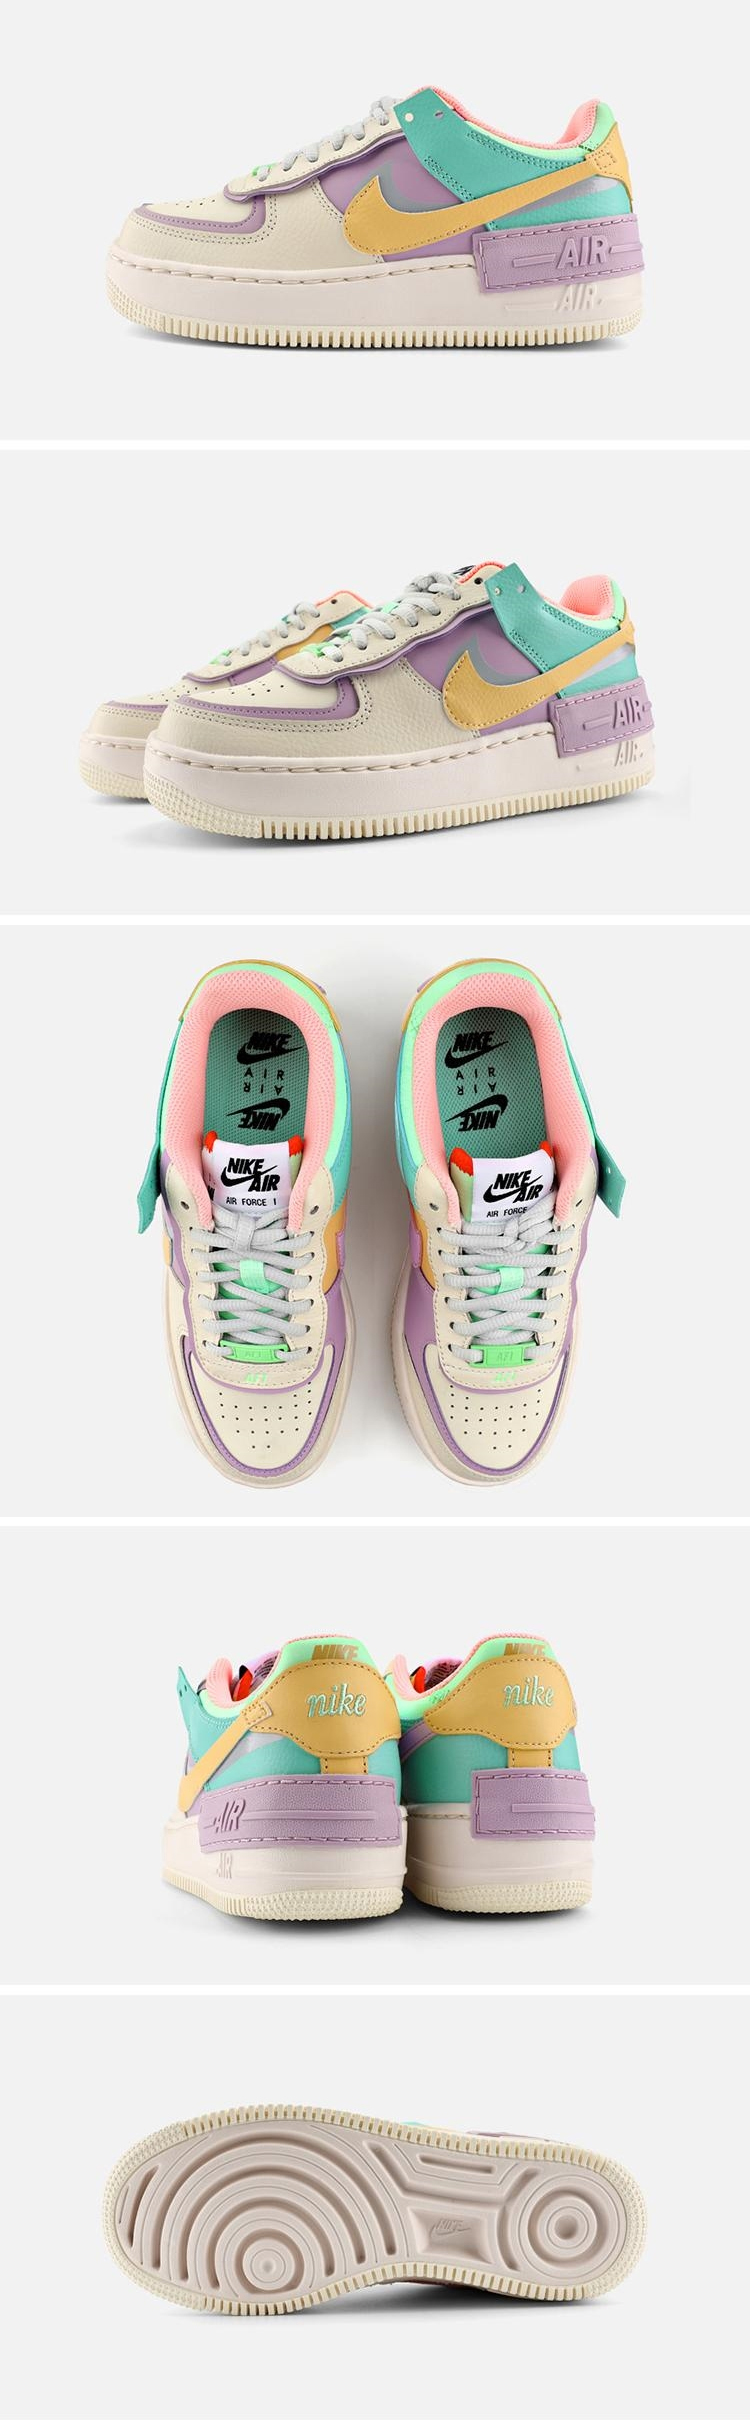 Nike Air Force 1 Shadow AF1 AirForce One Shoes For Men Original Skateboarding  Women's Outdoor Sports Sneakers - Hot Price #64A08   Cicig